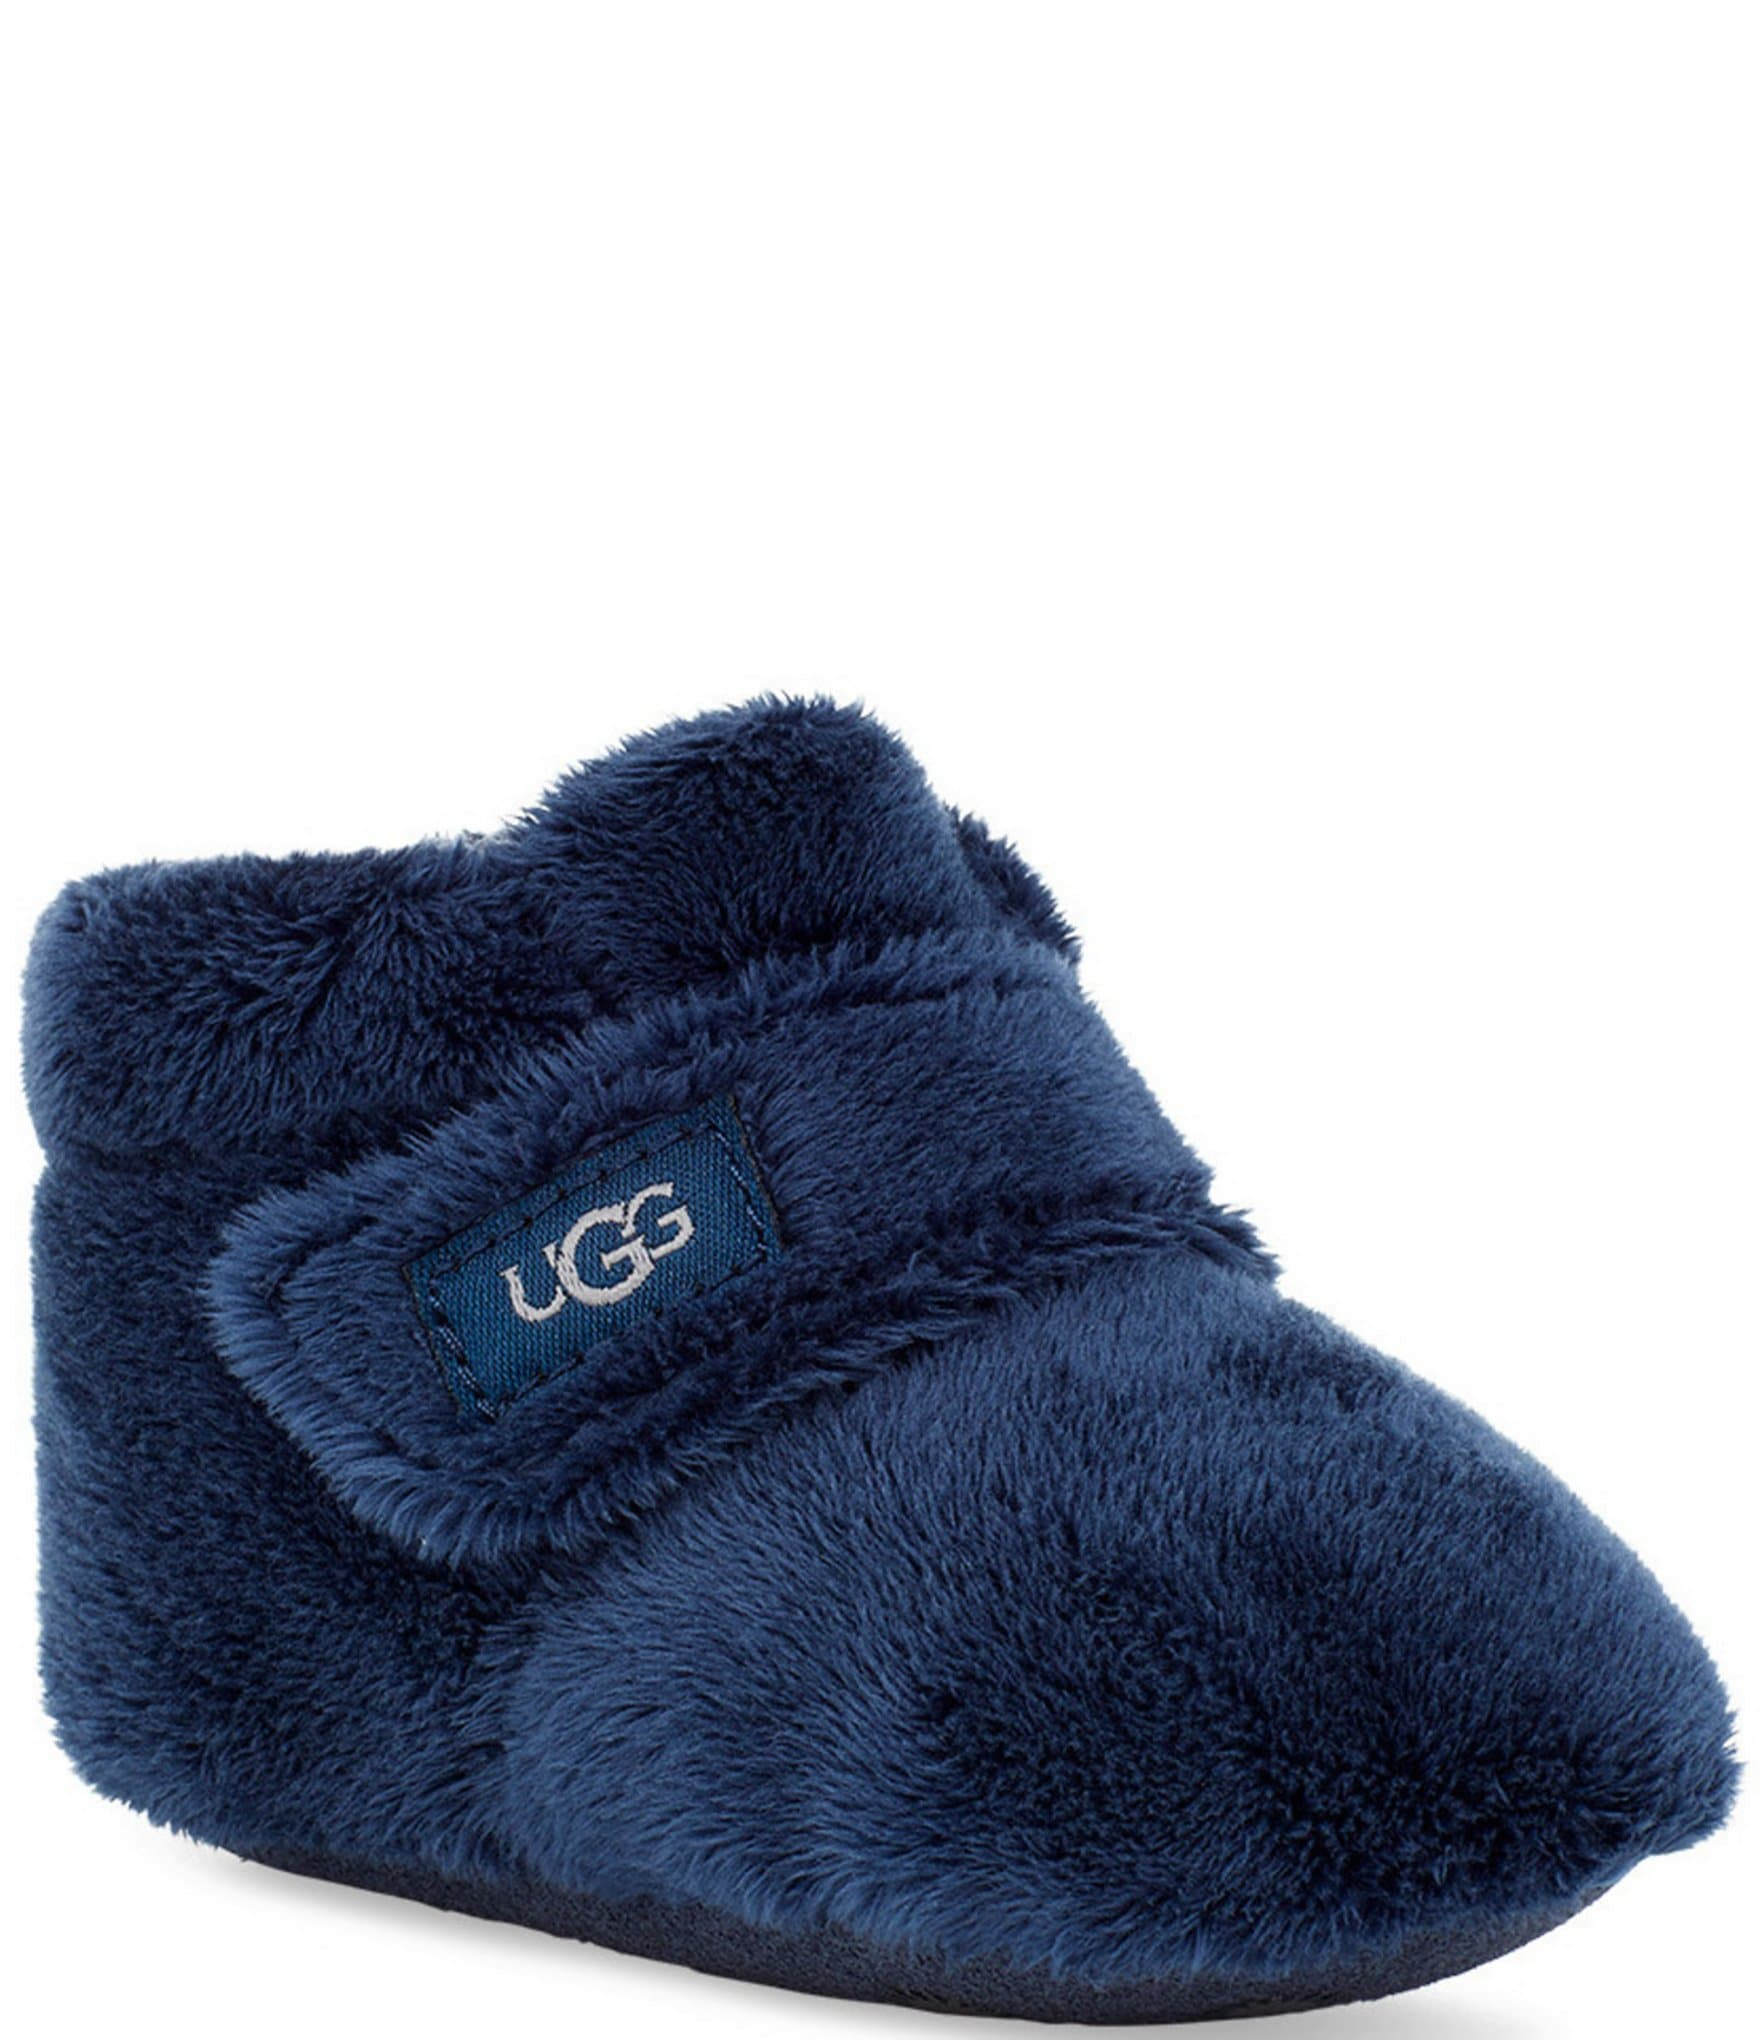 UGG Boots, Shoes, Slippers, Accessories